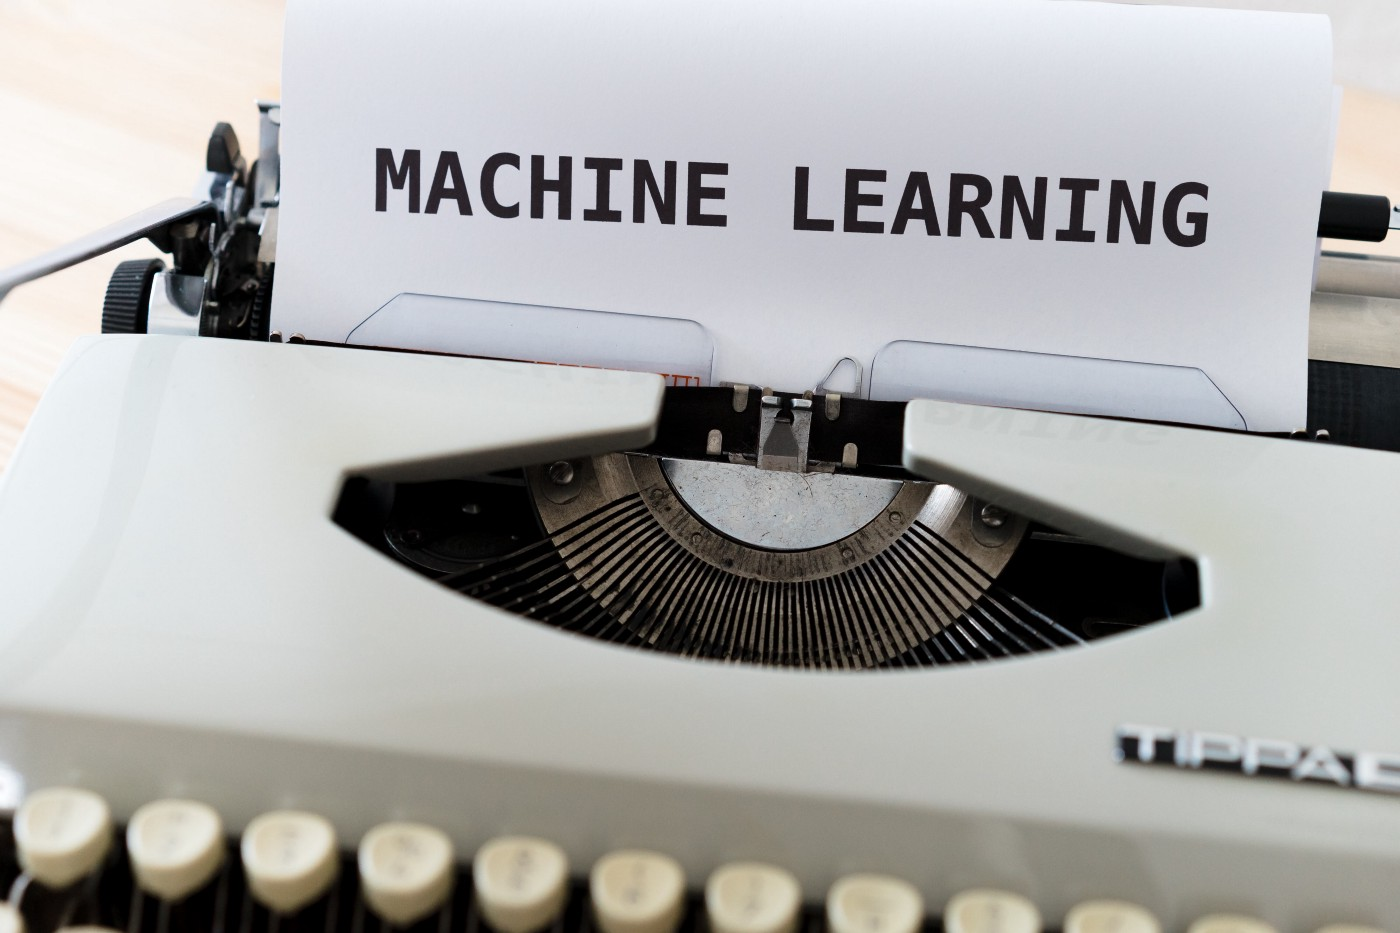 Web Scraping & data preprocessing for a machine learning model